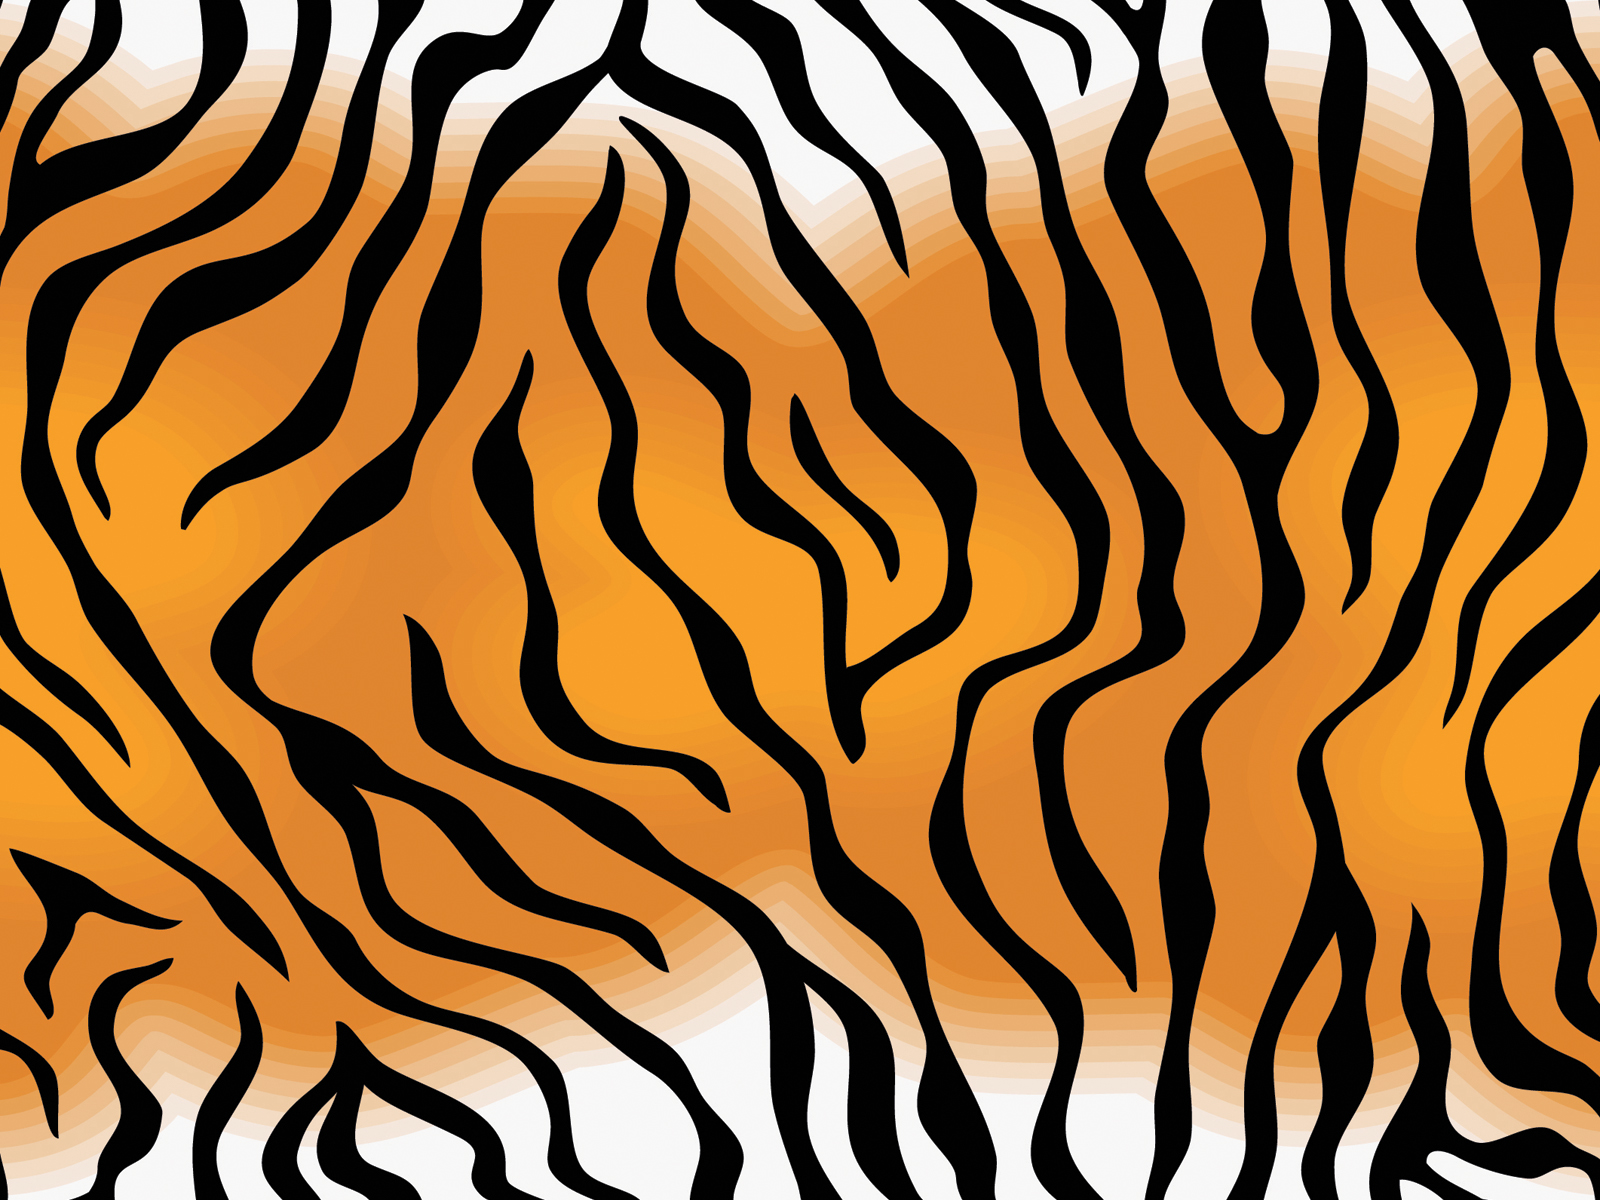 Tiger Skin Pattern PPT Backgrounds